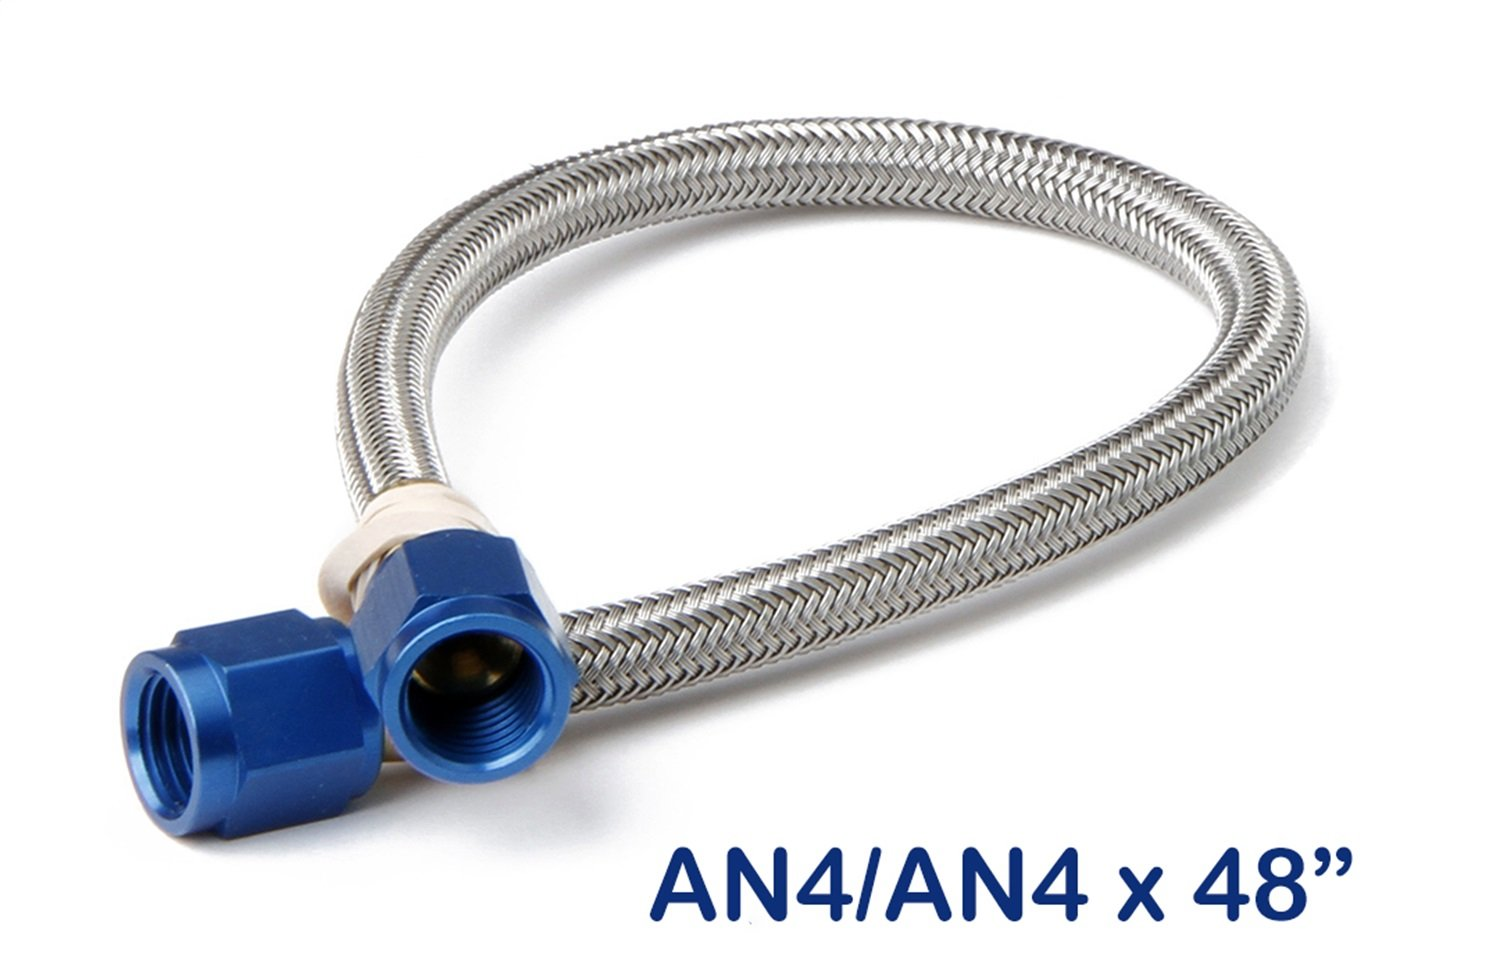 NOS 15250NOS Stainless Steel 4' Braided Hose with -4AN Blue Fittings